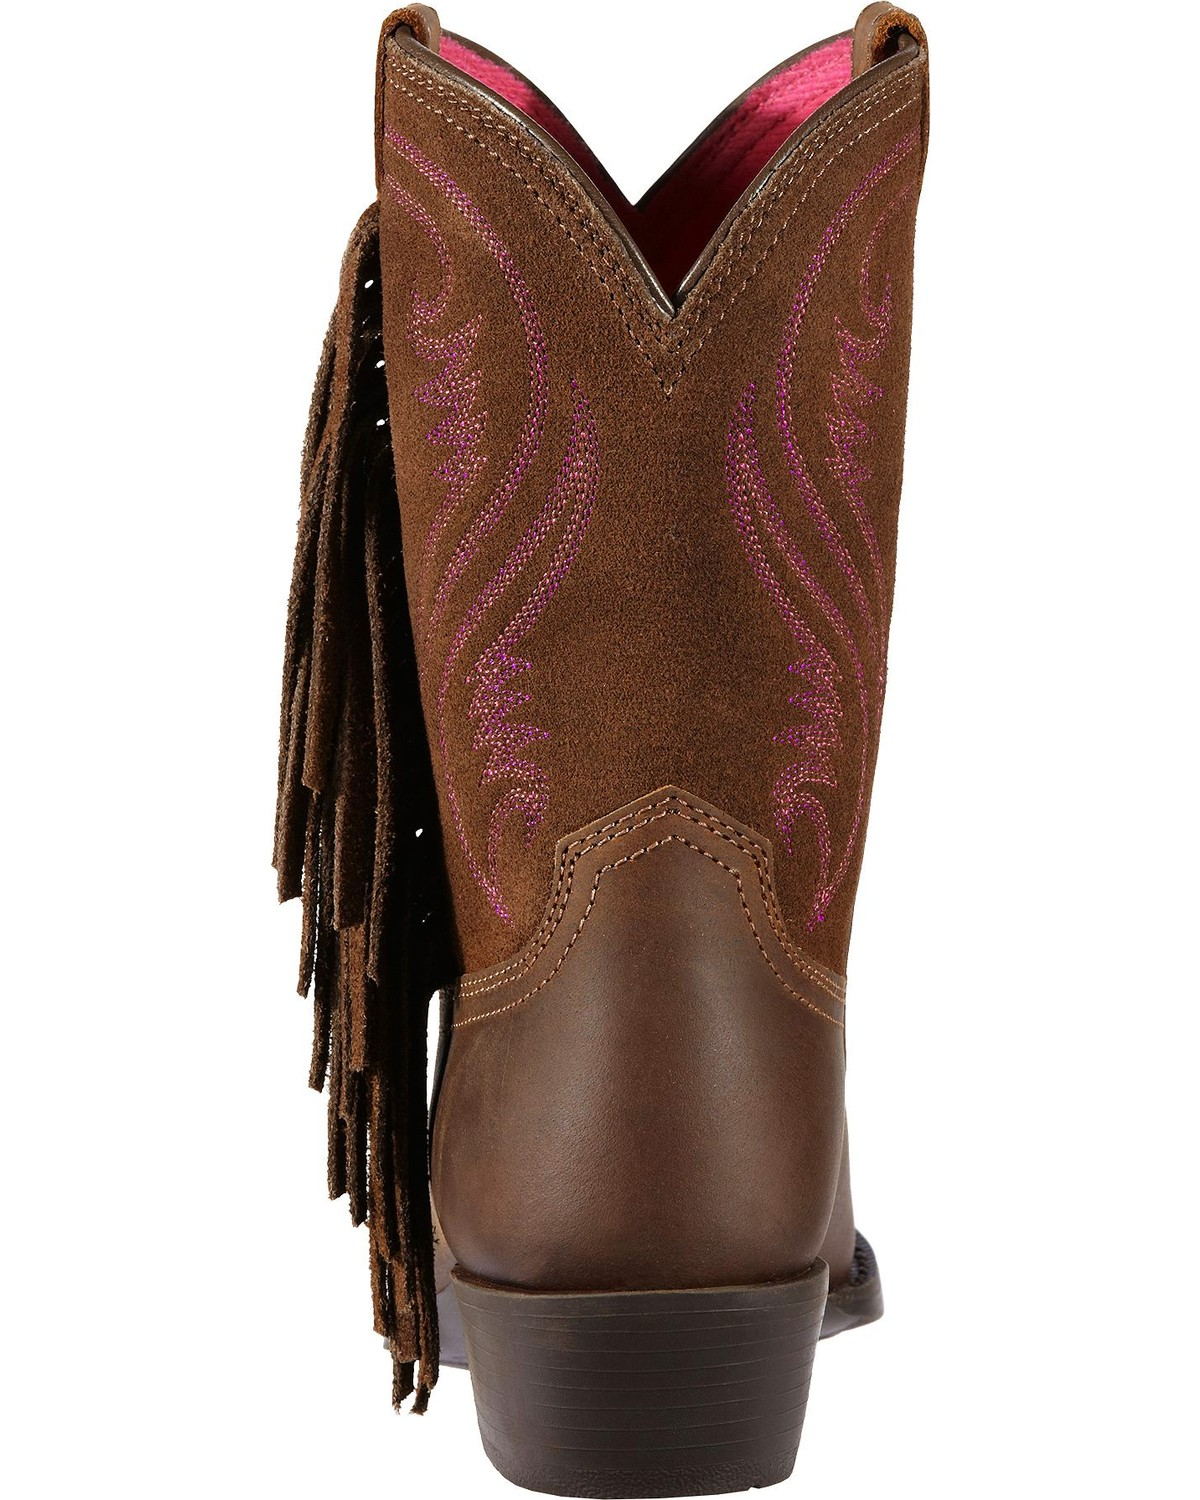 Ariat Youth Girls' Fancy Fringe Cowgirl Boots